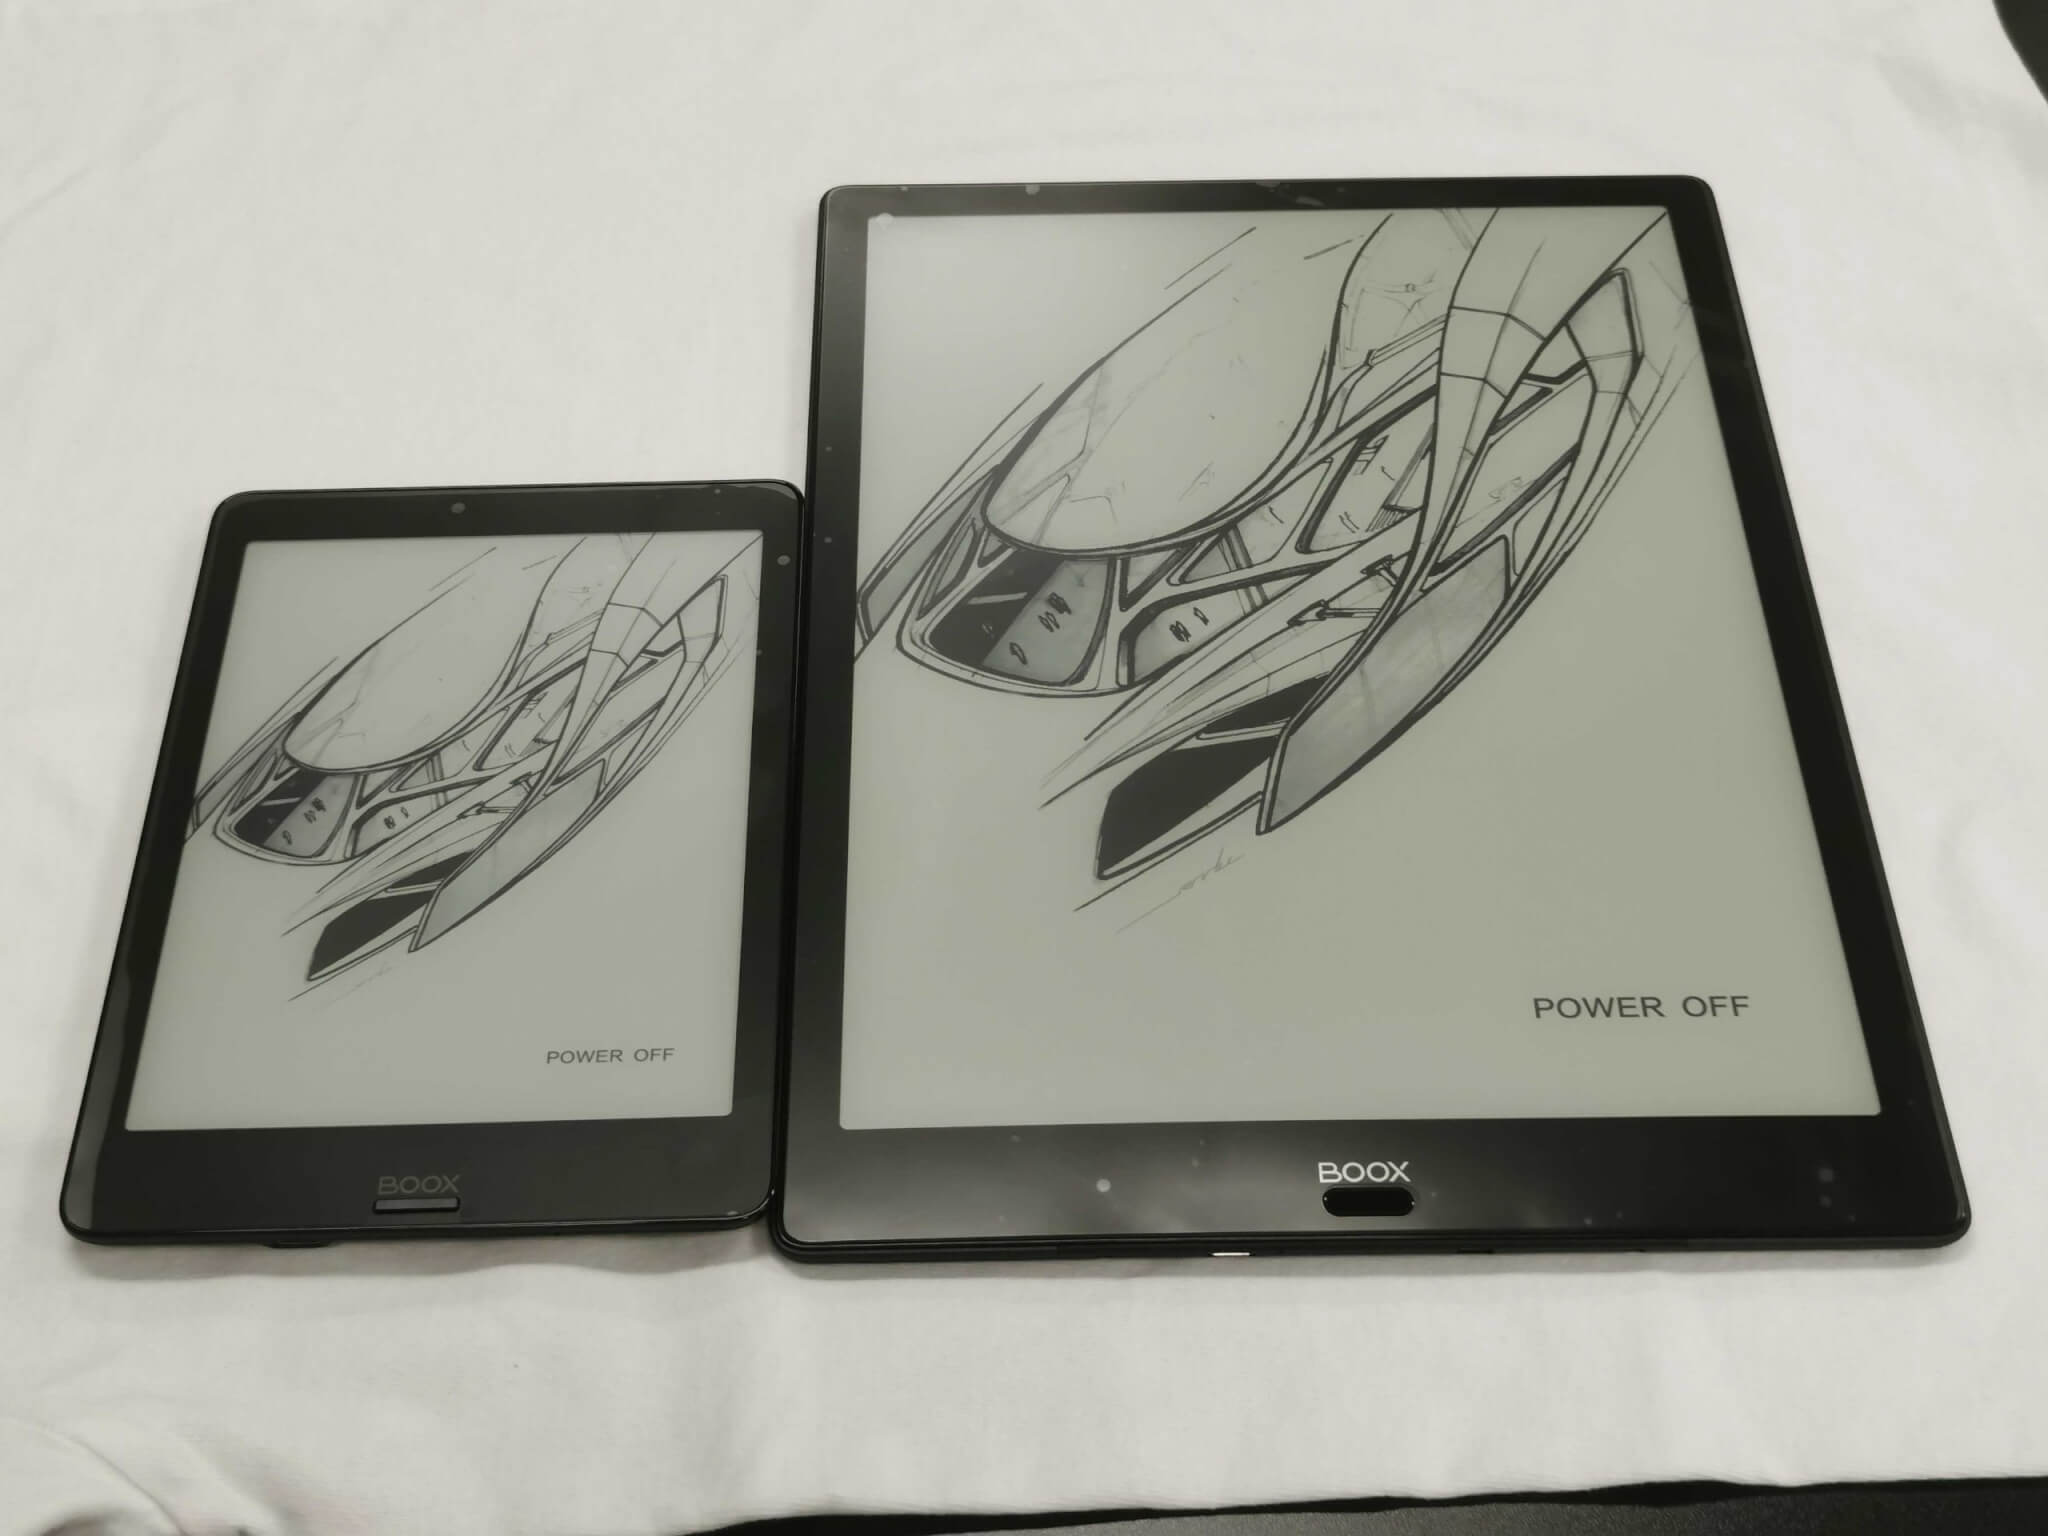 Android搭載E-inkタブレット・電子書籍リーダーBOOXに新たな機種が登場!「BOOX – Nova 2」「BOOX – Max 3」徹底比較!